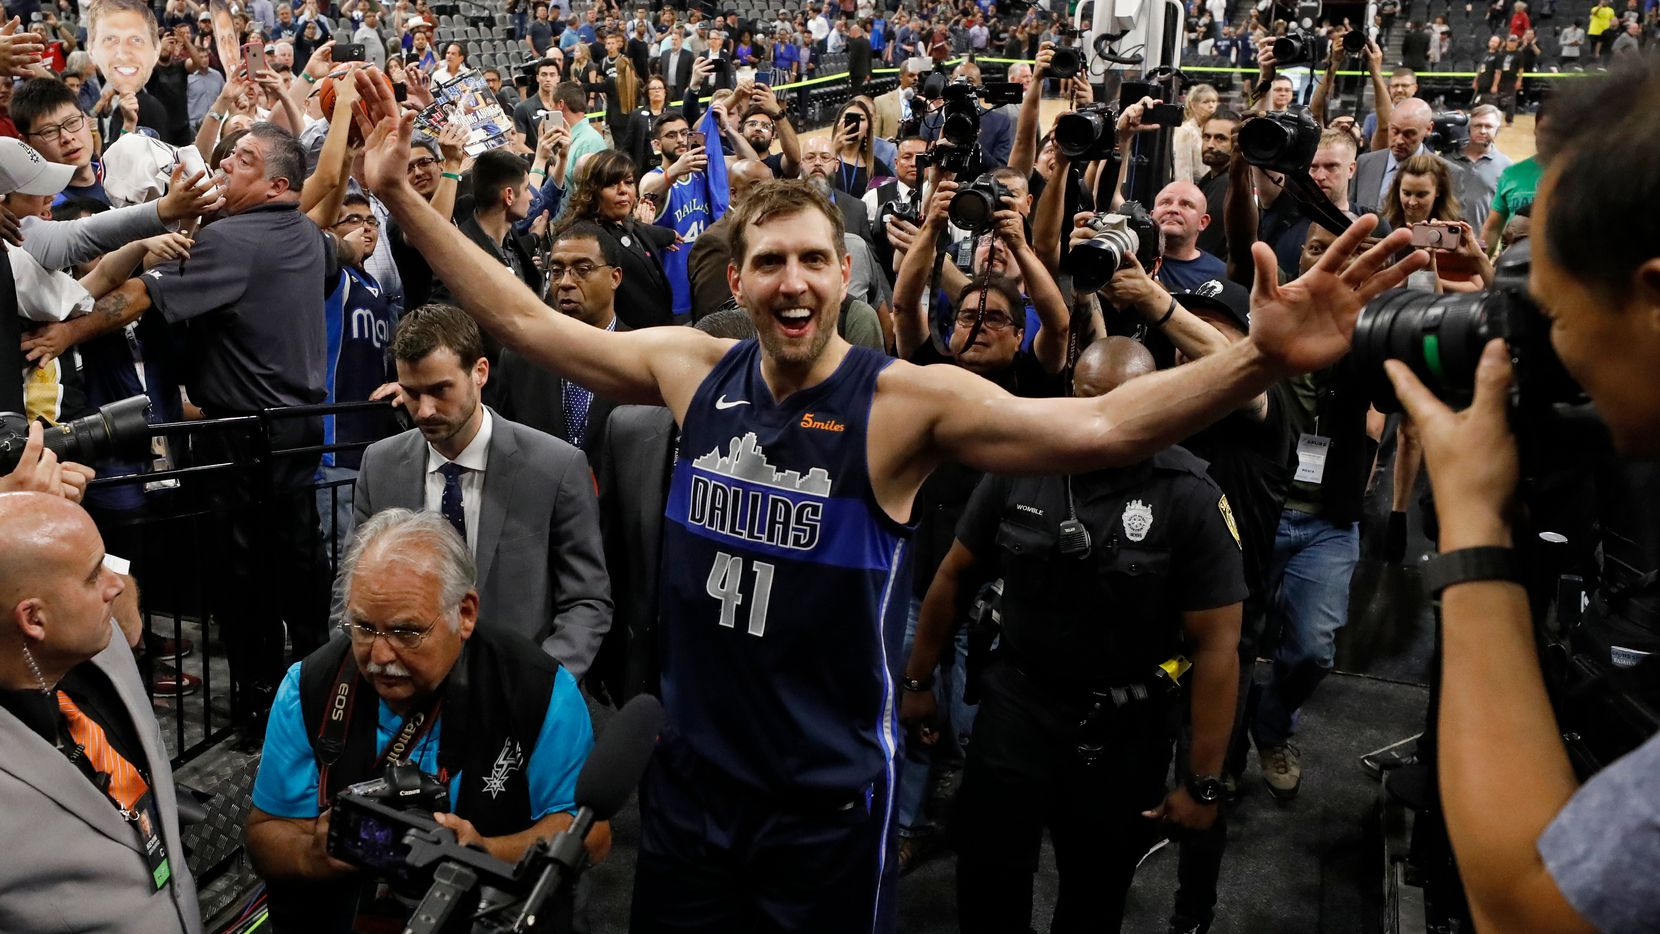 Dallas Mavericks' Dirk Nowitzki walks off the court after the game against the San Antonio Spurs, held Wednesday April 10, 2019 at the AT&T Center in San Antonio, Texas.    (Edward A. Ornelas/Special Contributor)